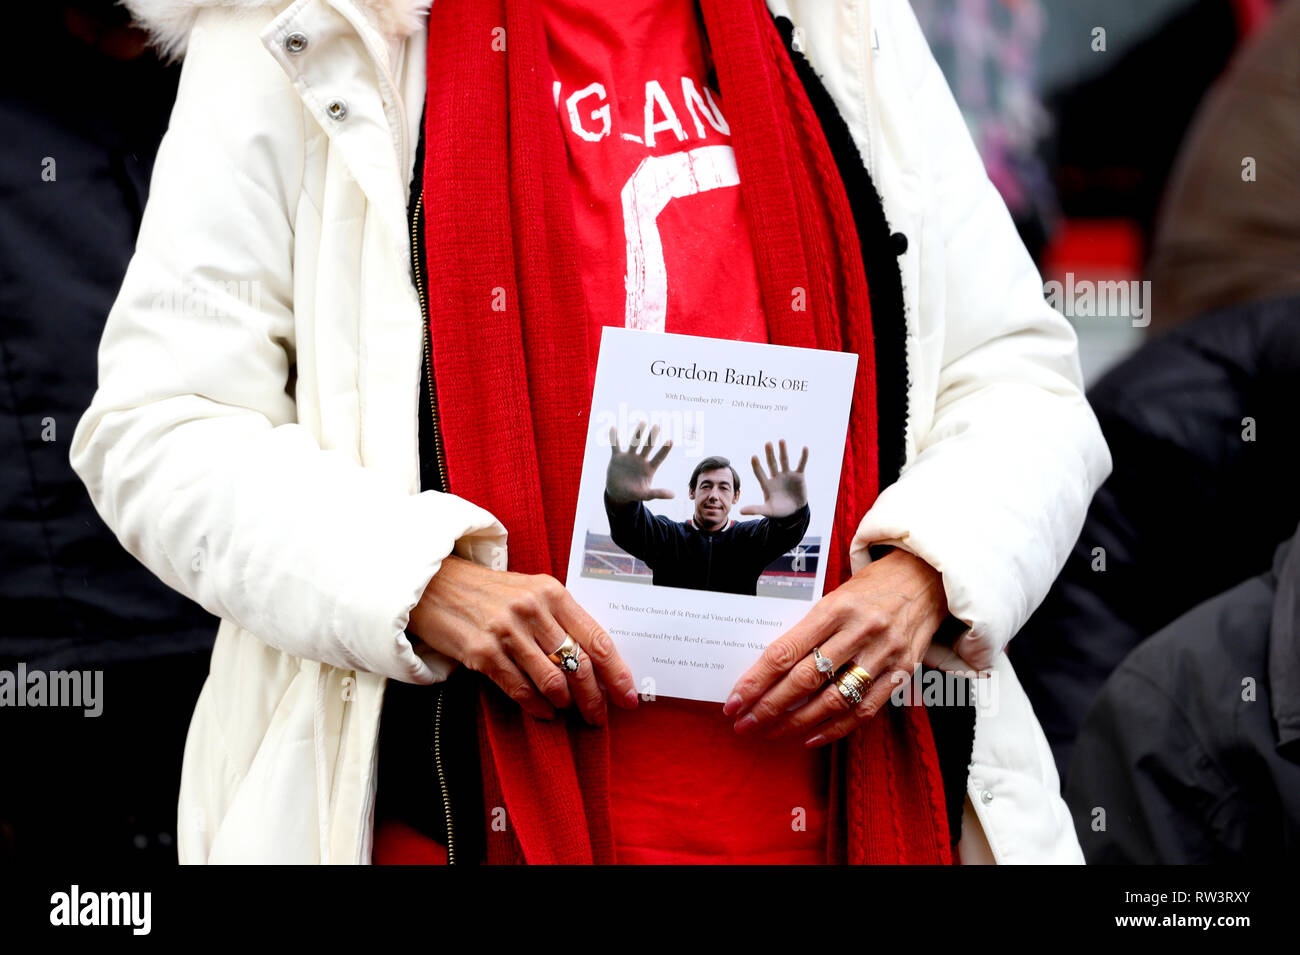 A general view of the Order of Service for the Funeral of Gordon Banks as fans await the funeral cortege arriving at the bet365 Stadium, Stoke. - Stock Image